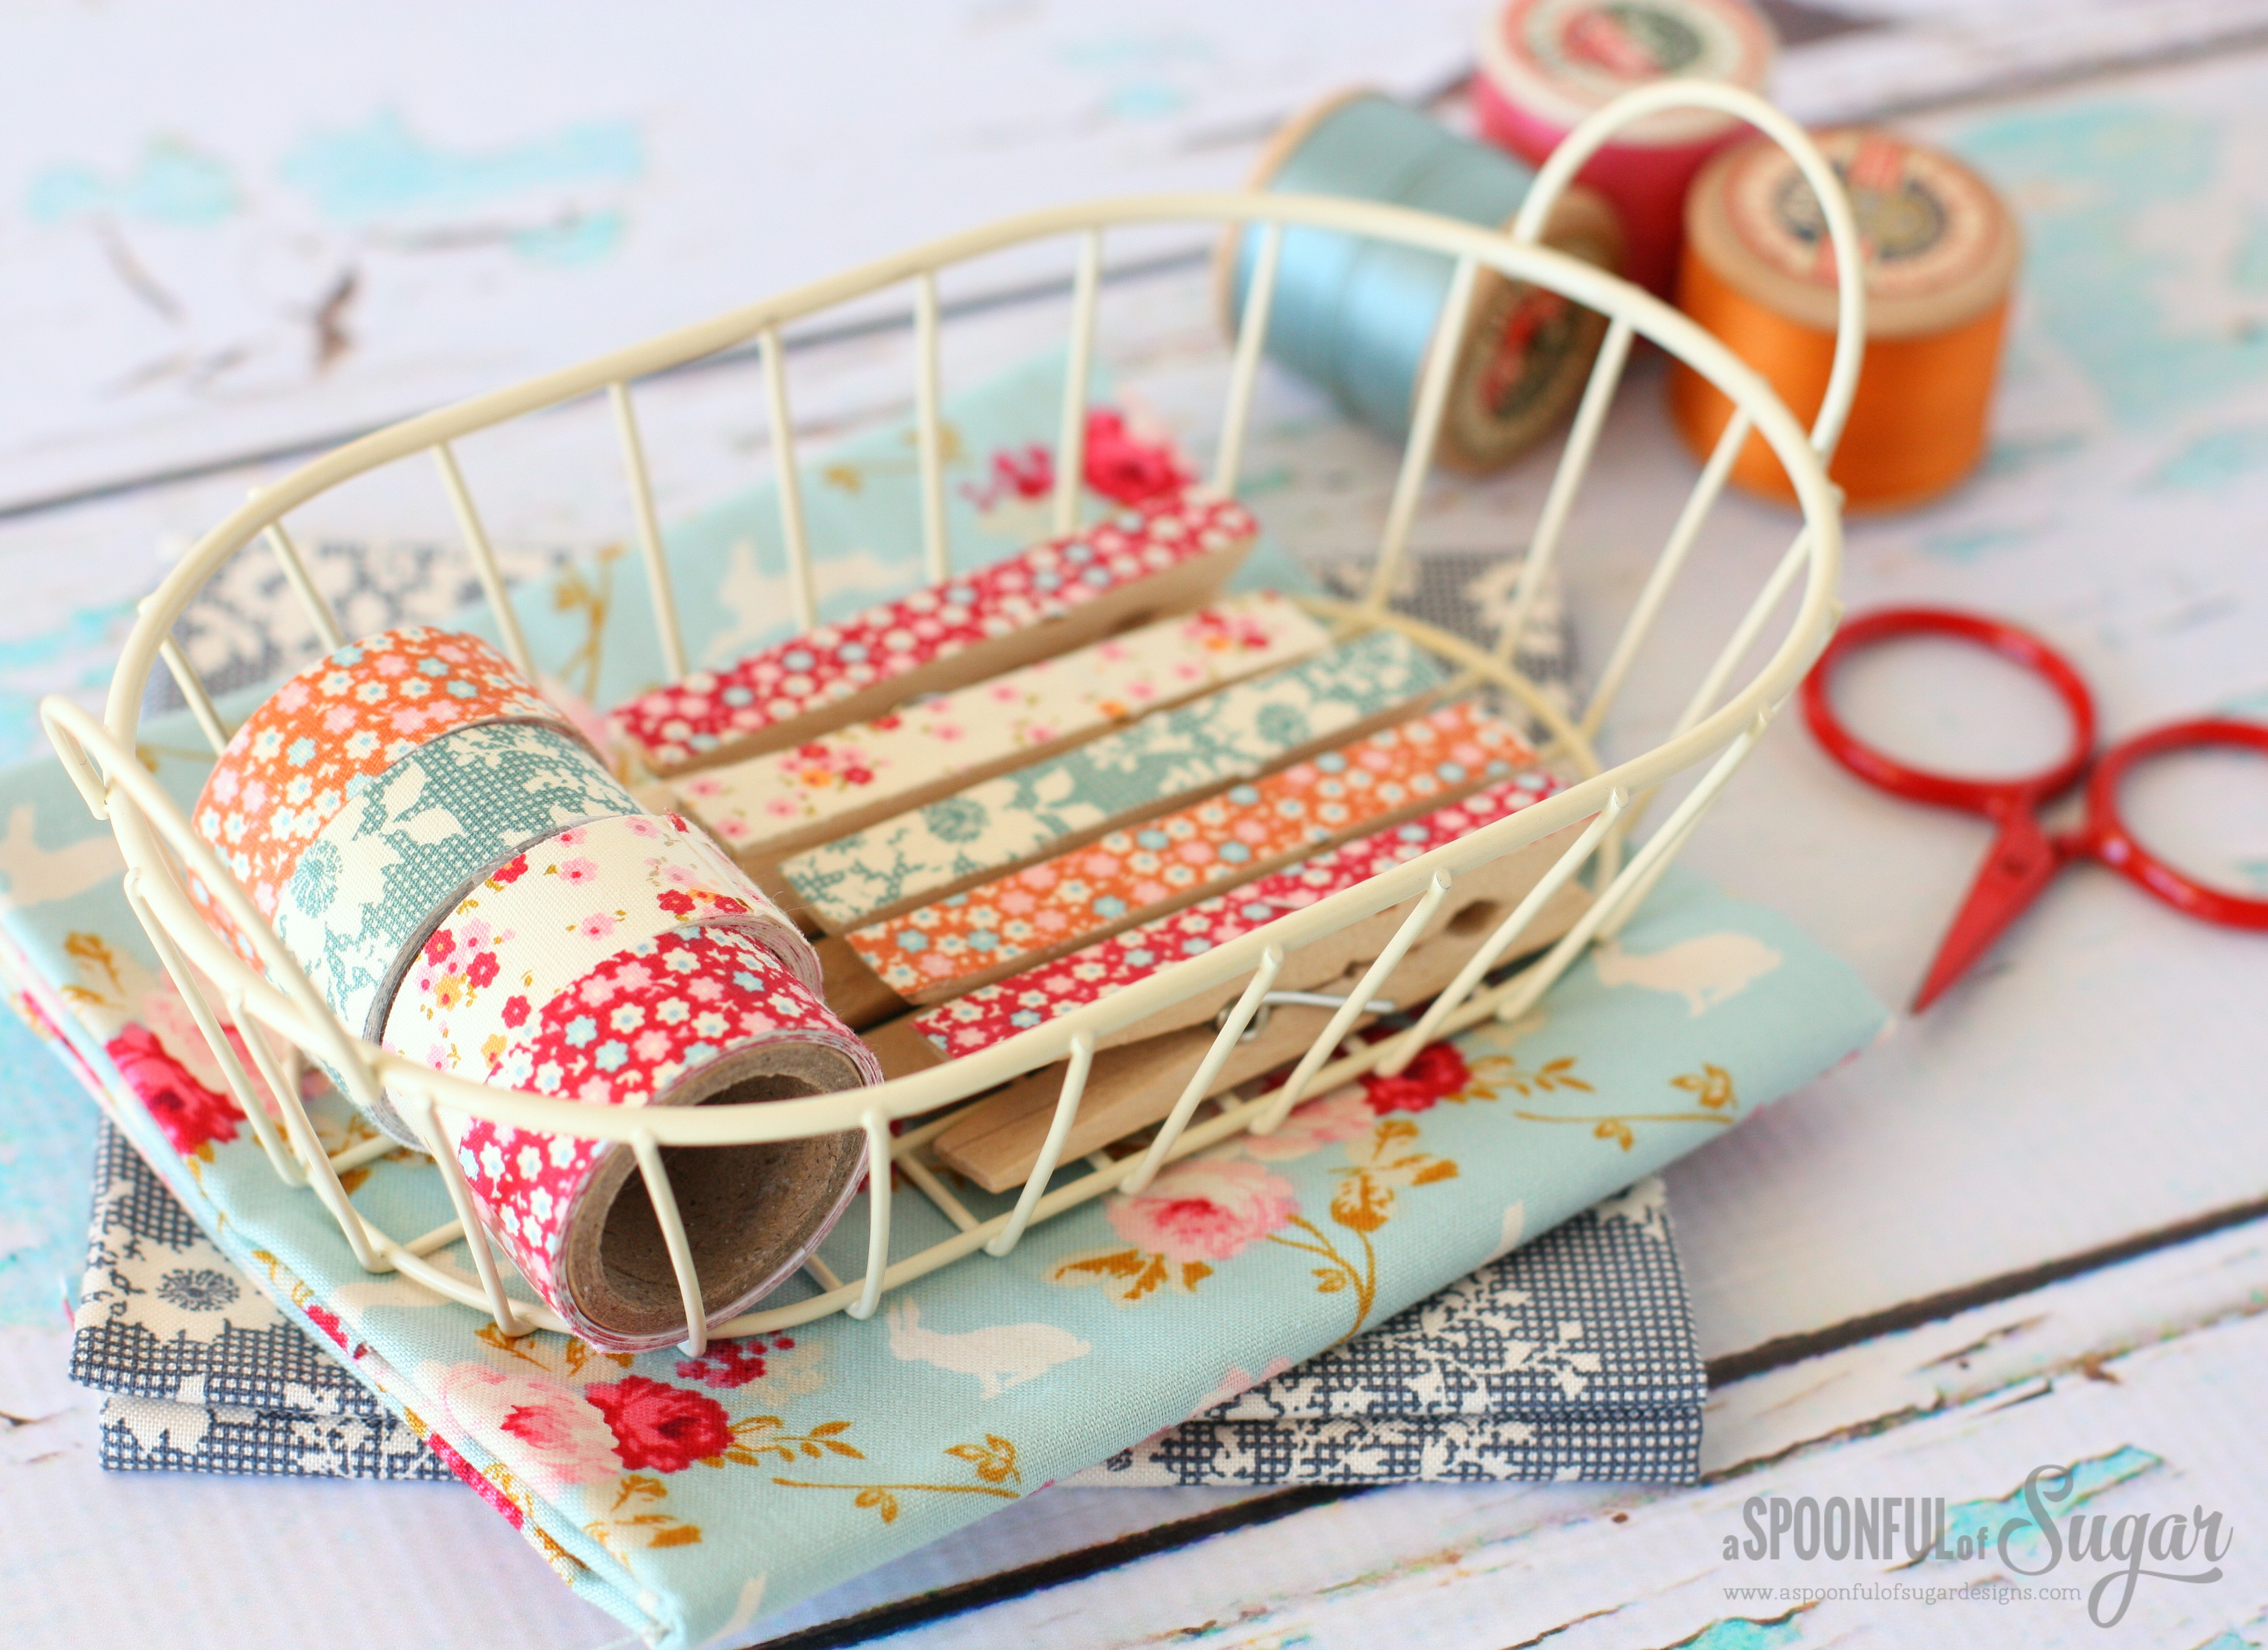 Decorate pegs (clothespins) with fabric tape